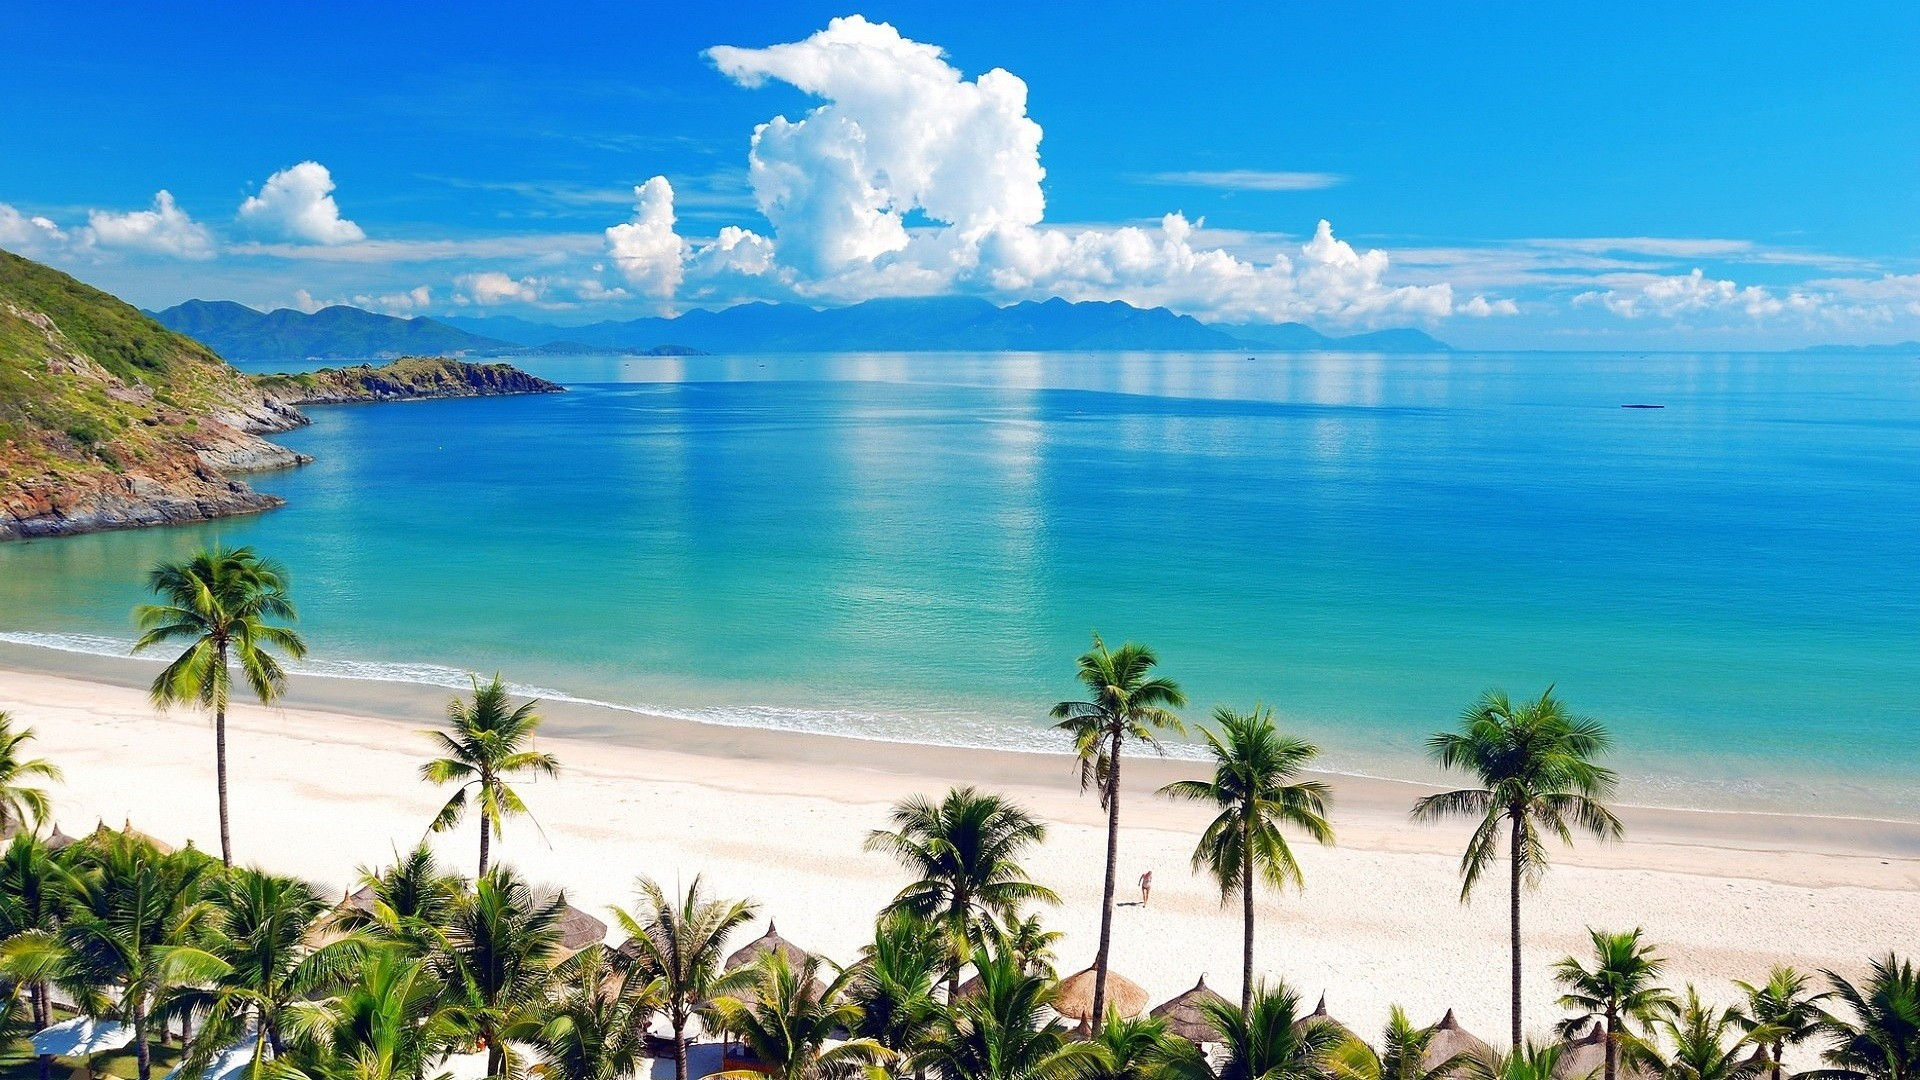 Free Download Beach And Blue Sea Wallpaper Download Full Hd